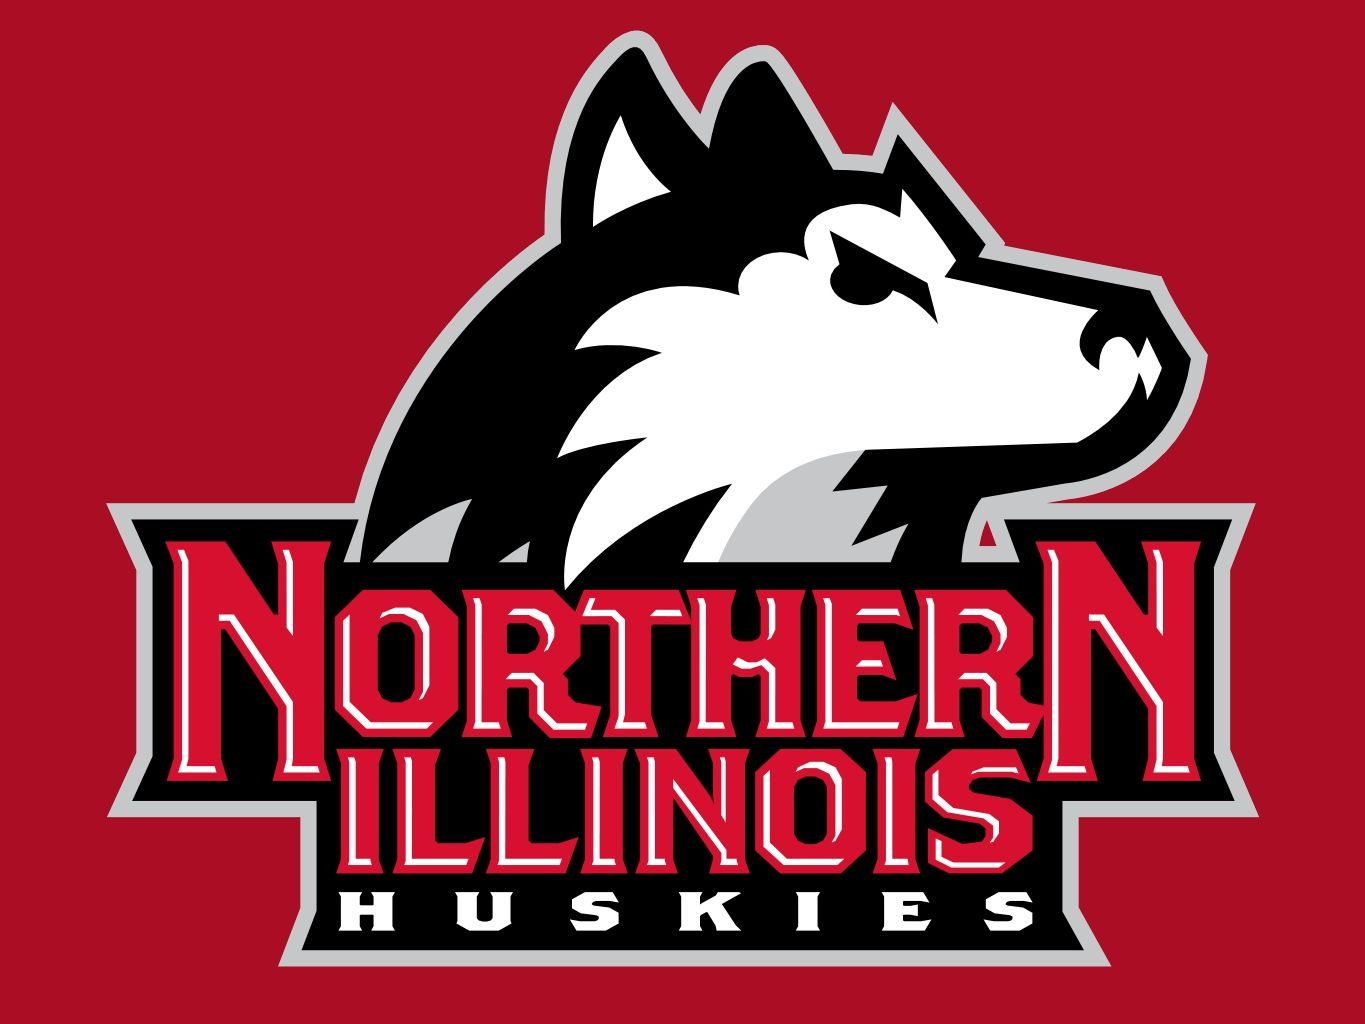 Northern Illinois Huskies Northern Illinois Huskies Northern Illinois University Illinois